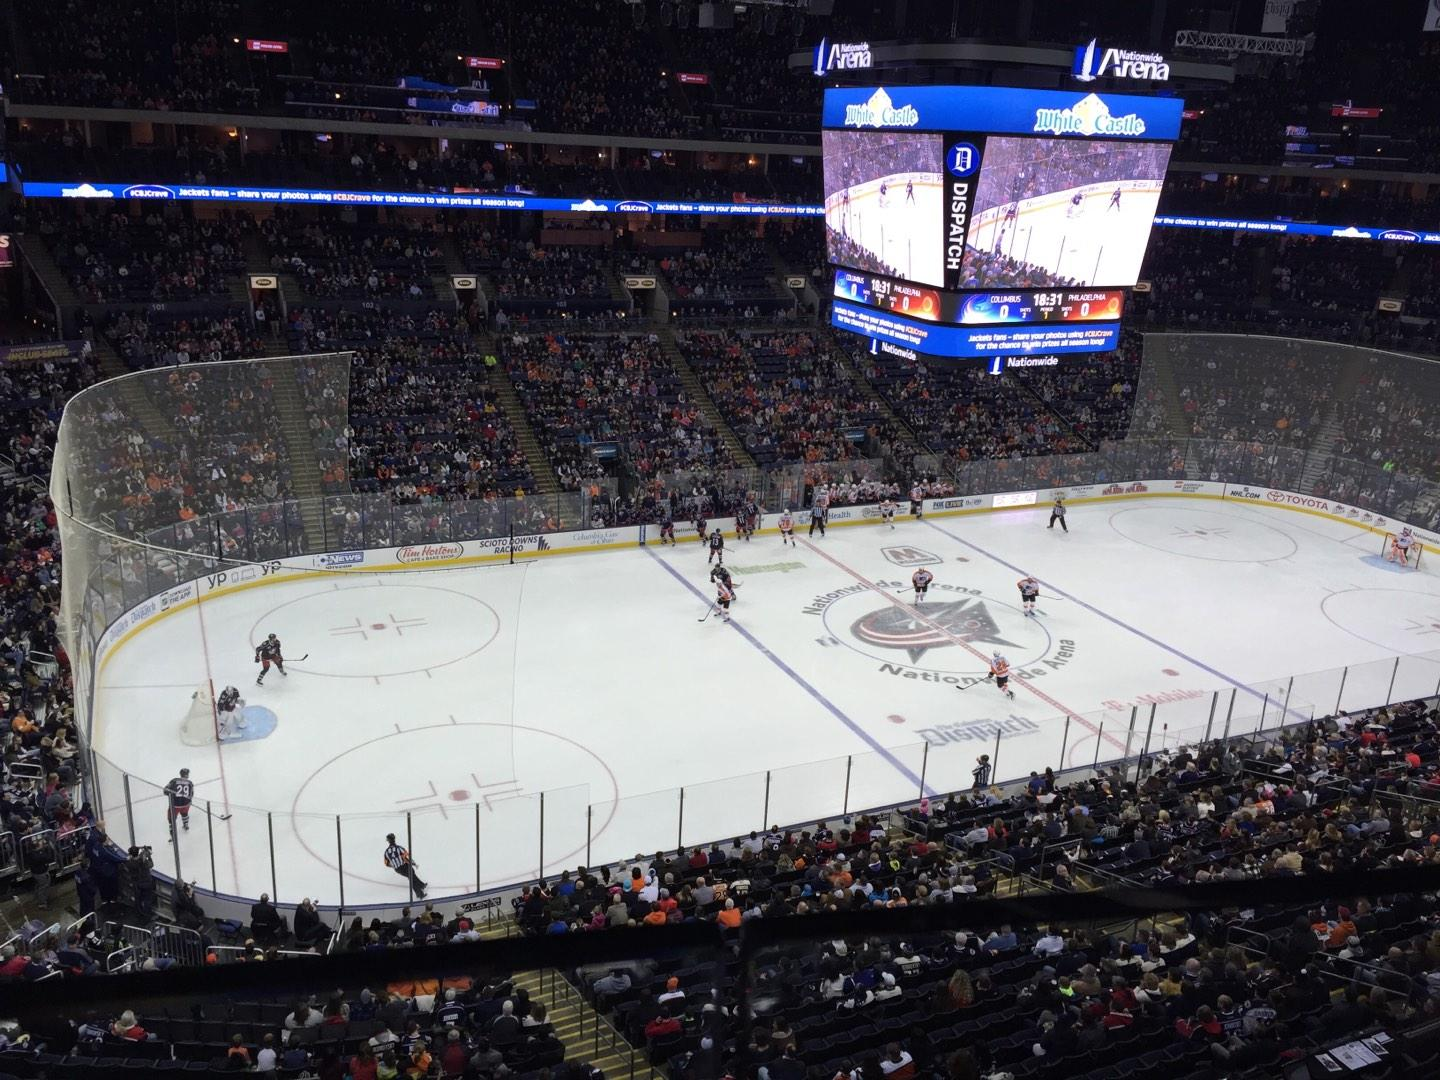 Nationwide Arena Section 219 - Columbus Blue Jackets - RateYourSeats.com